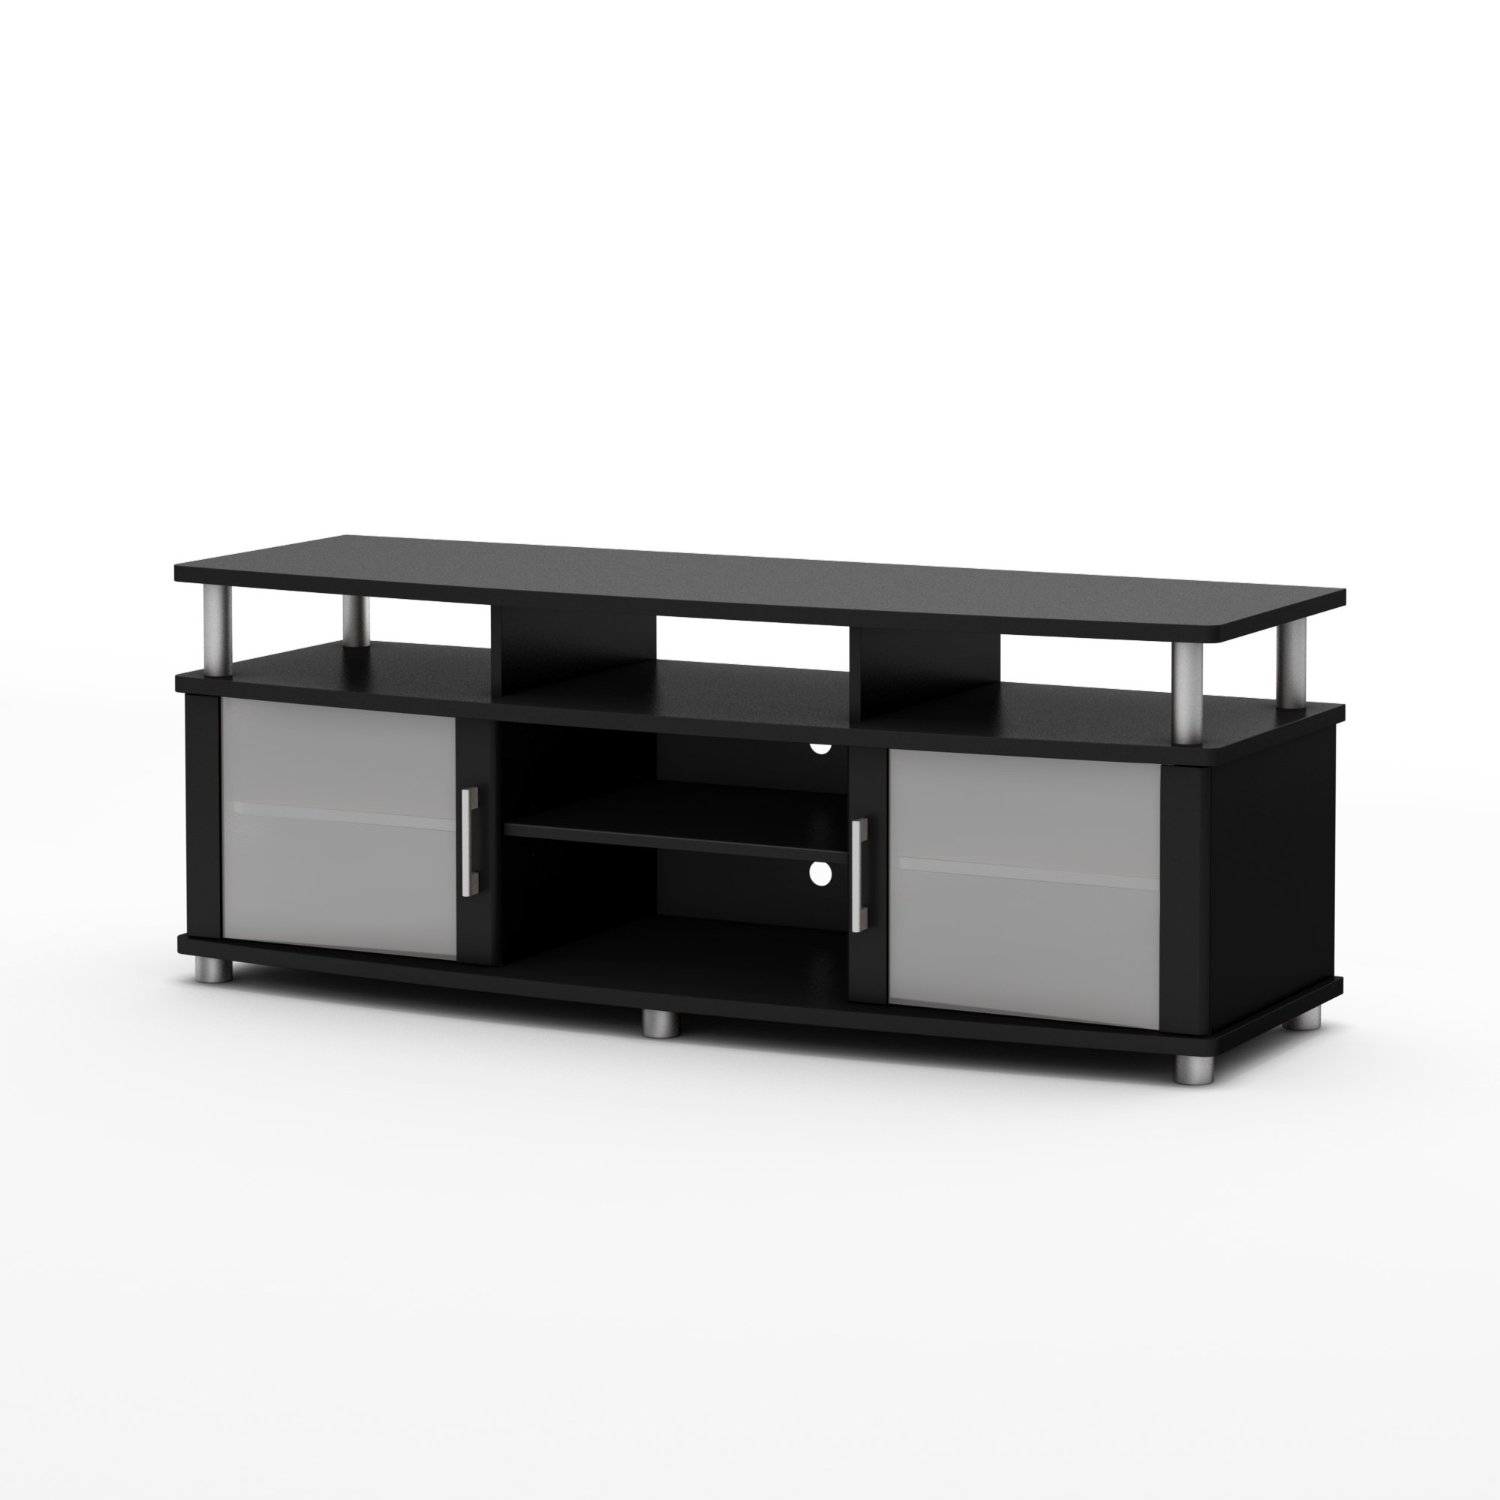 This Eco-Friendly TV Stand in Black Finish - Contemporary Style combines curved lines, metal accents and frosted glass for popular contemporary style. It is a perfect blend of form and function, featuring both open and closed storage options and a large surface perfect for TVs of 60-inch or less. The living room has never been so tidy and organized. Behind both doors and in the center, you will find 2 storage spaces divided by an adjustable shelf and under the top, 3 other open spaces. Its weight capacity is 150-pound. Also available in chocolate finish. The back surface is not finished and the accessories are not included.